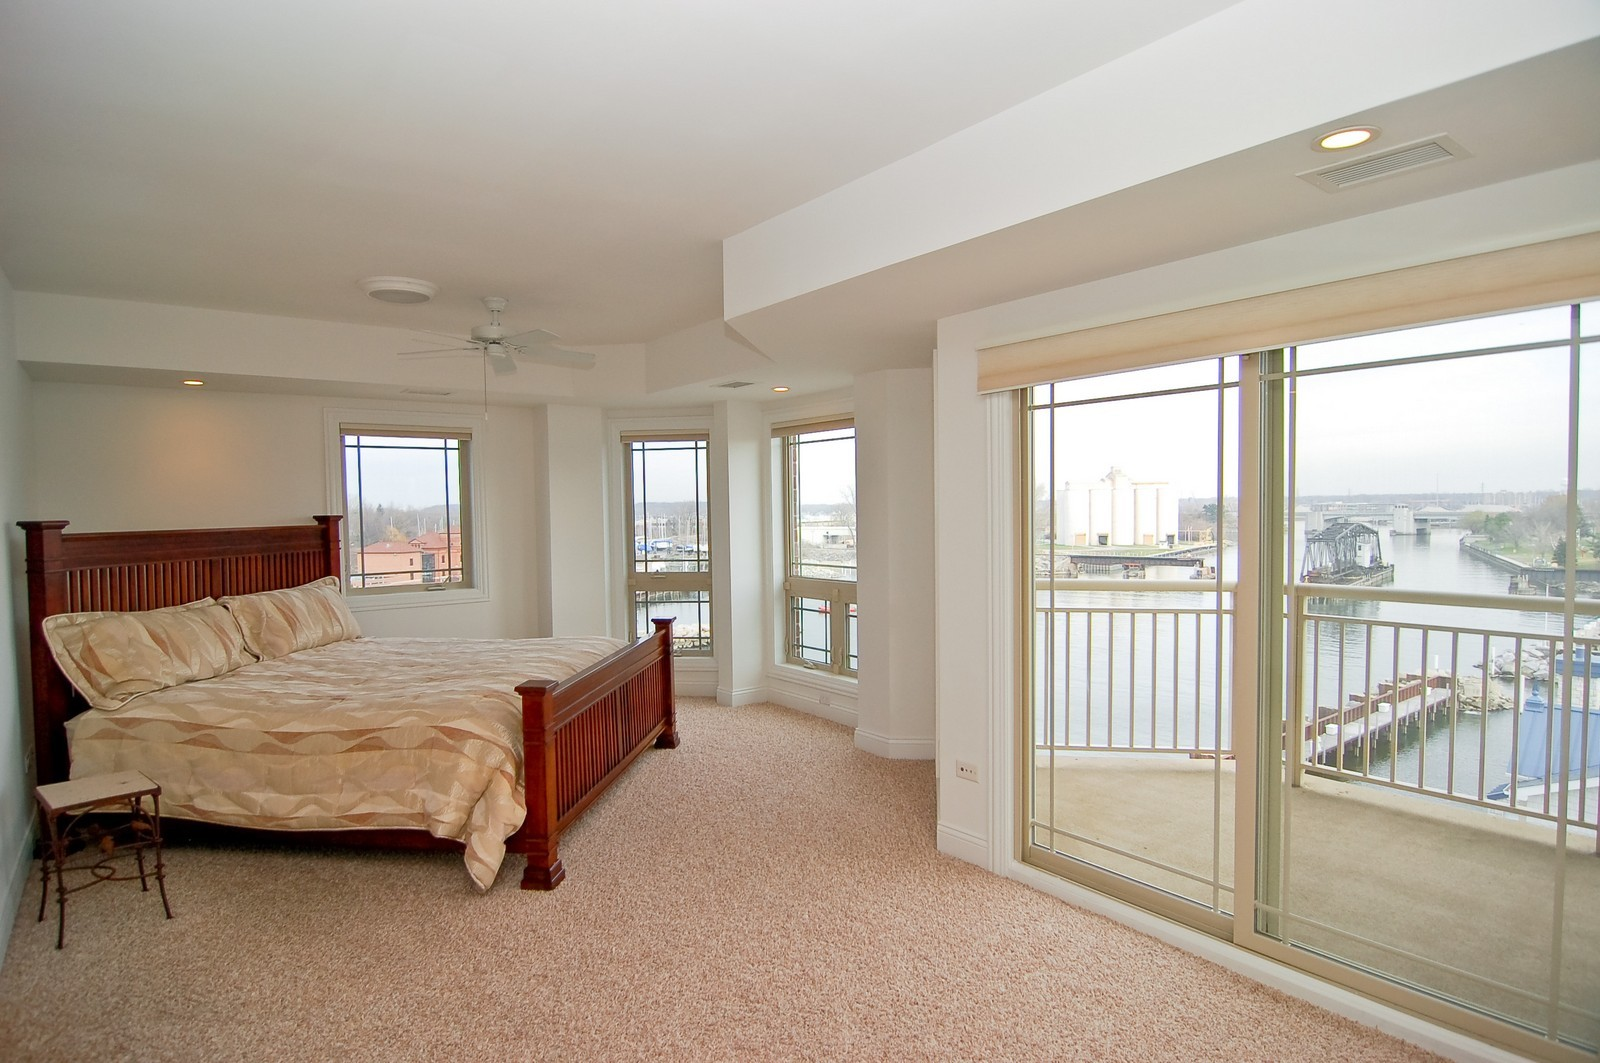 Real Estate Photography - 200- 7B Lake Street, St Joseph, MI, 49085 - Master Bedroom